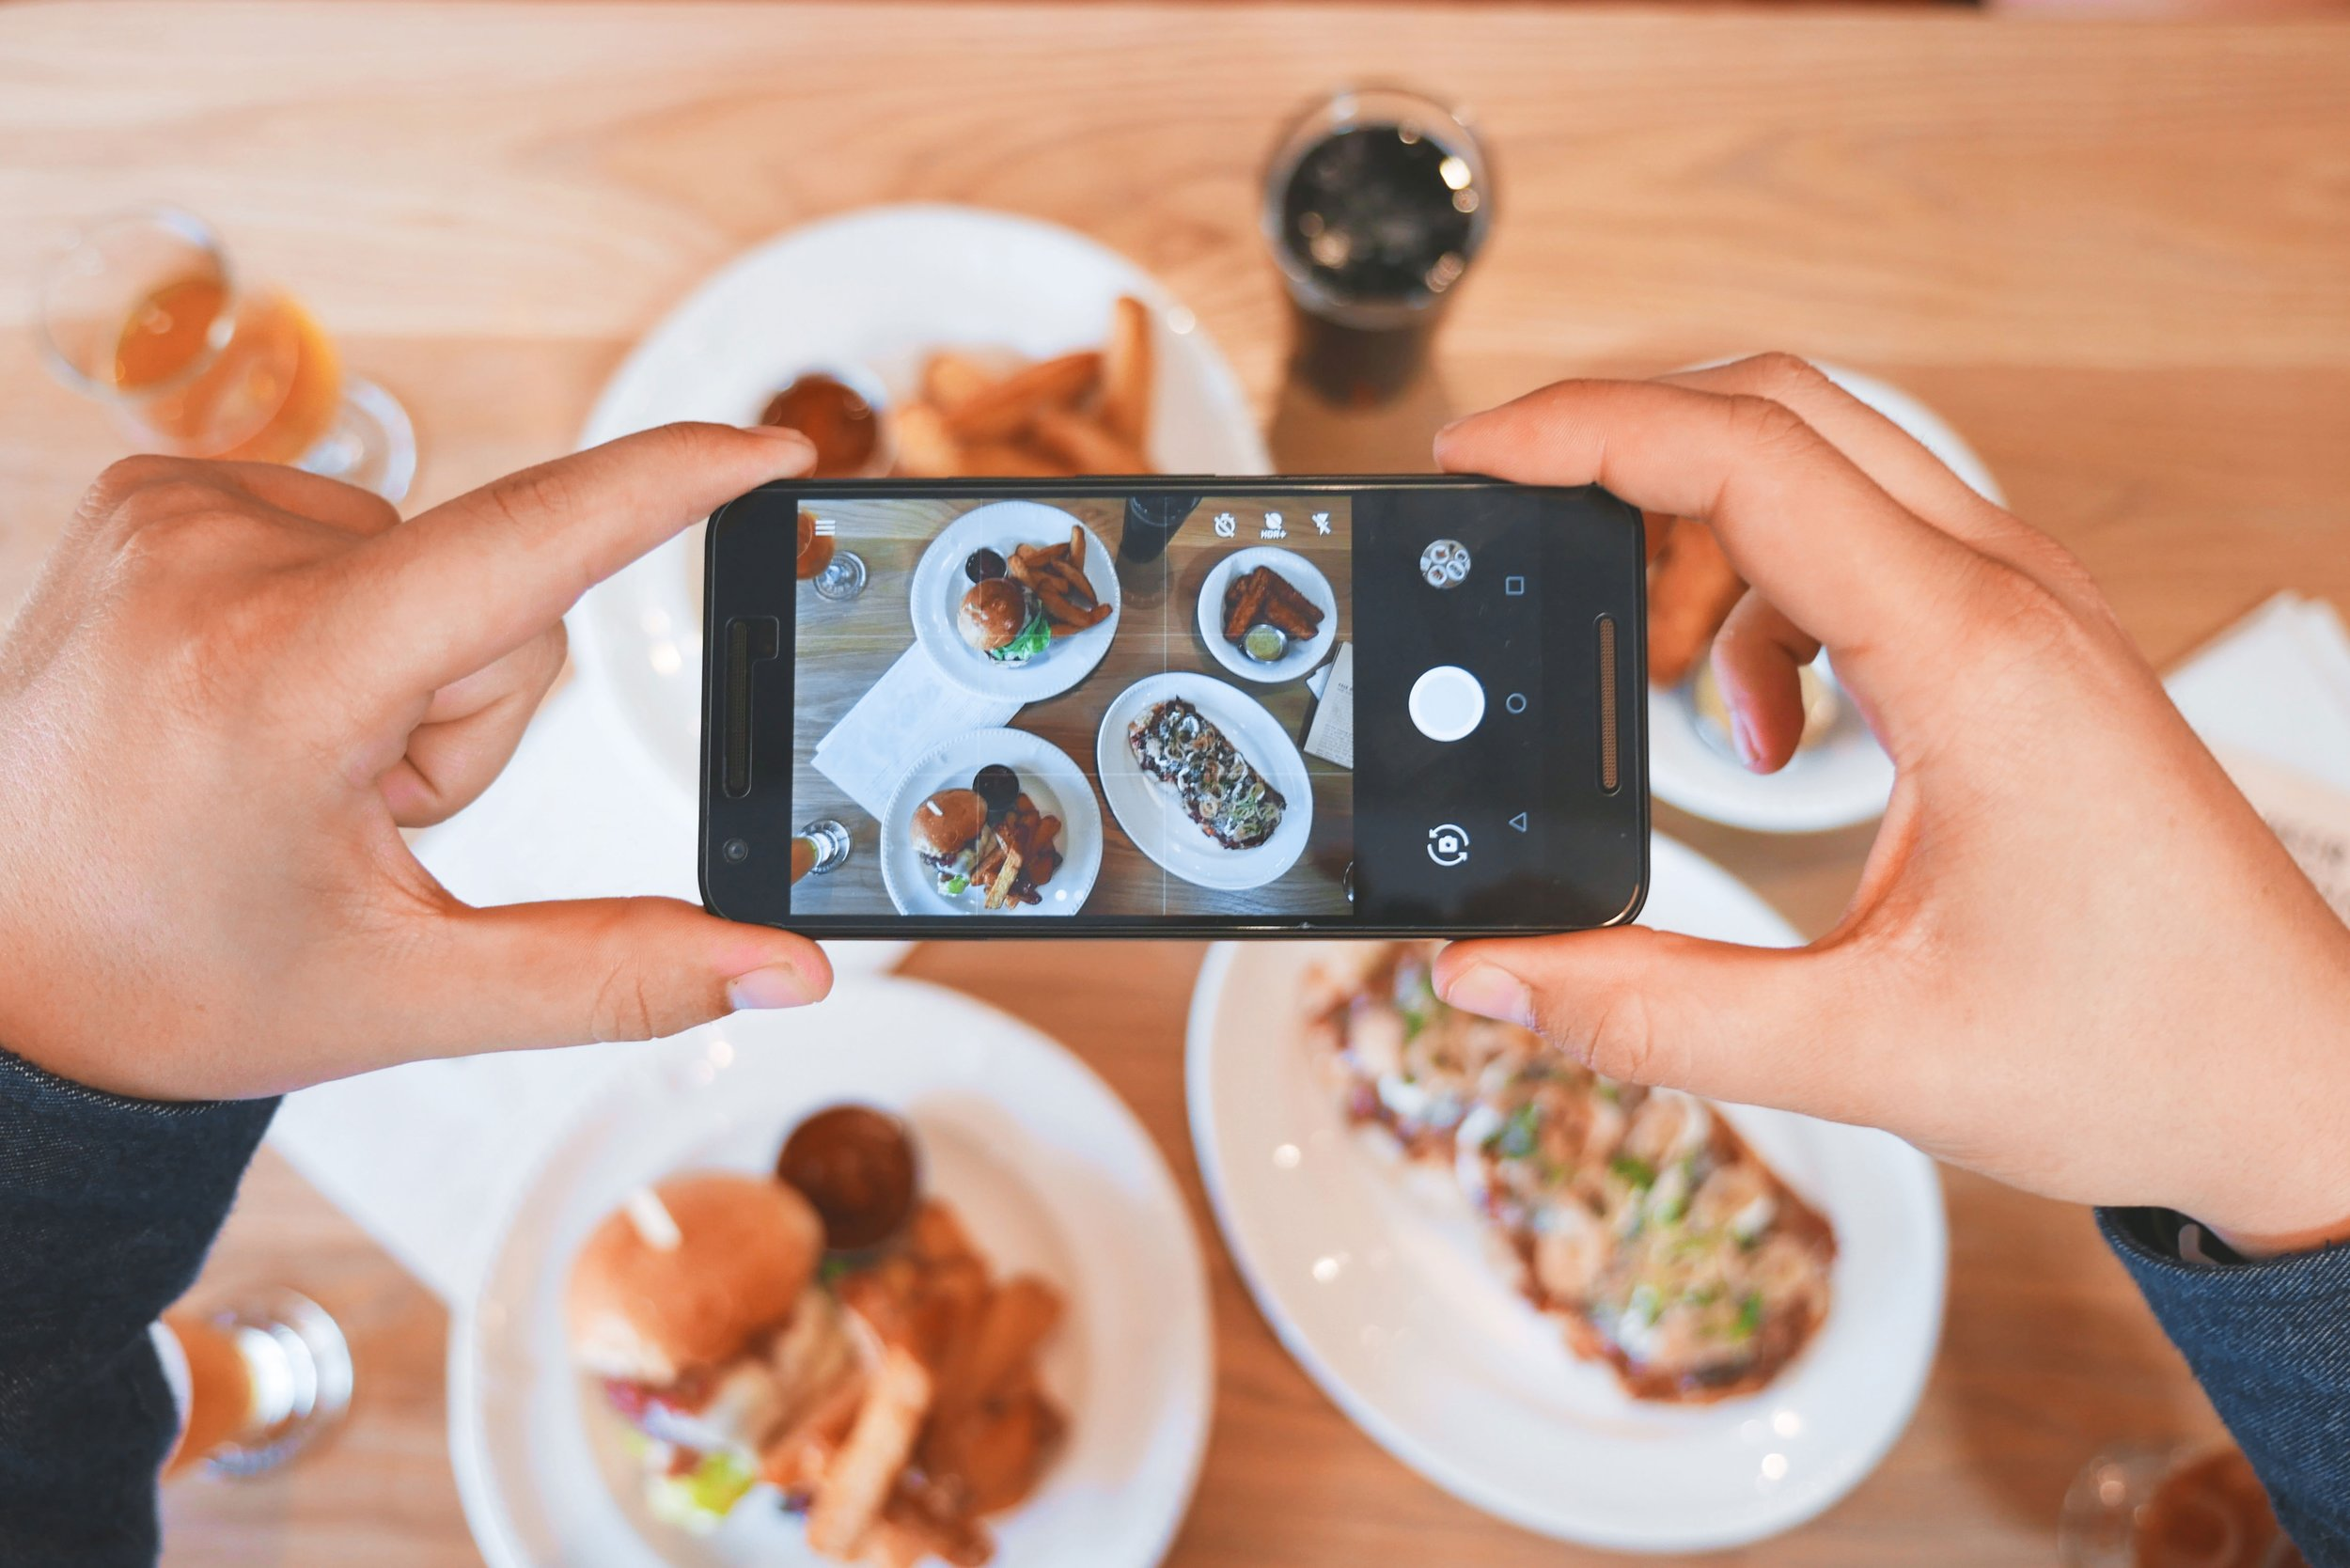 Instagram is the most popular social media platform in 2019. Taking advantage of peak posting times can help you grow your brand. Photo credit: Eaters Collective